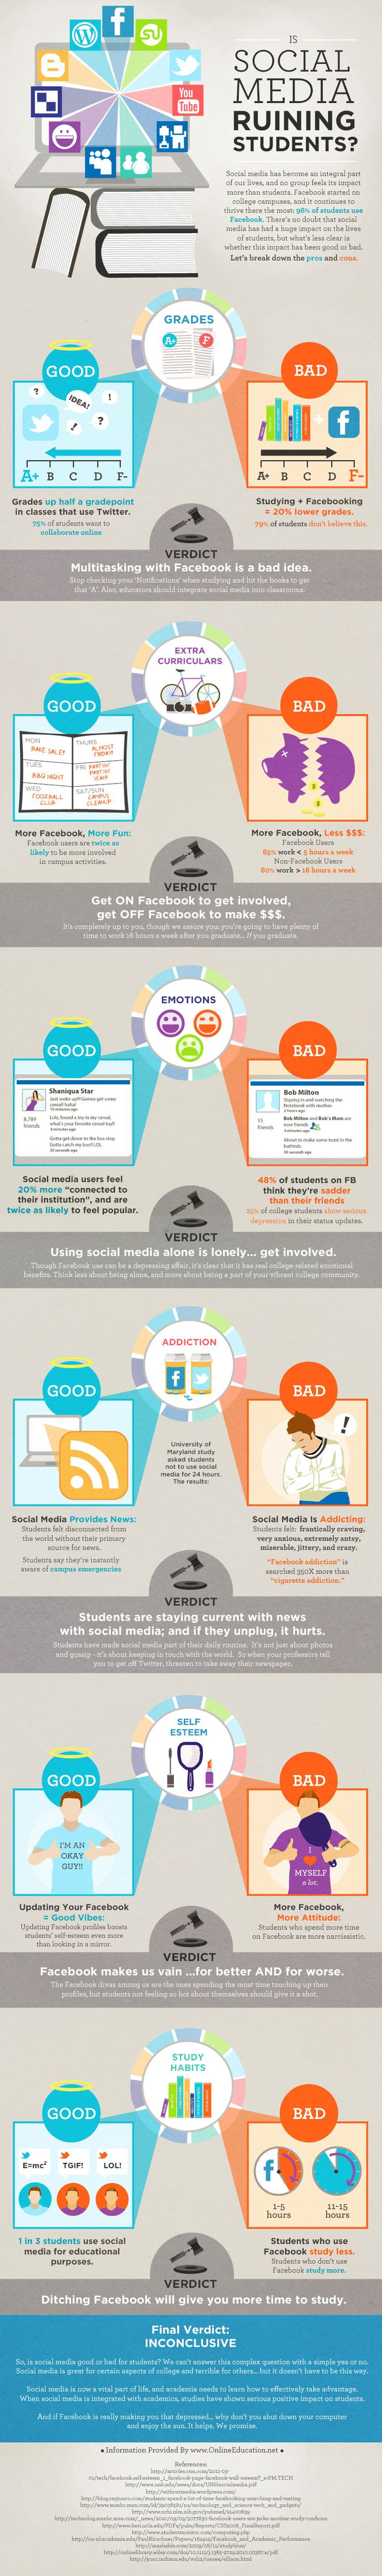 is facebook good for students?